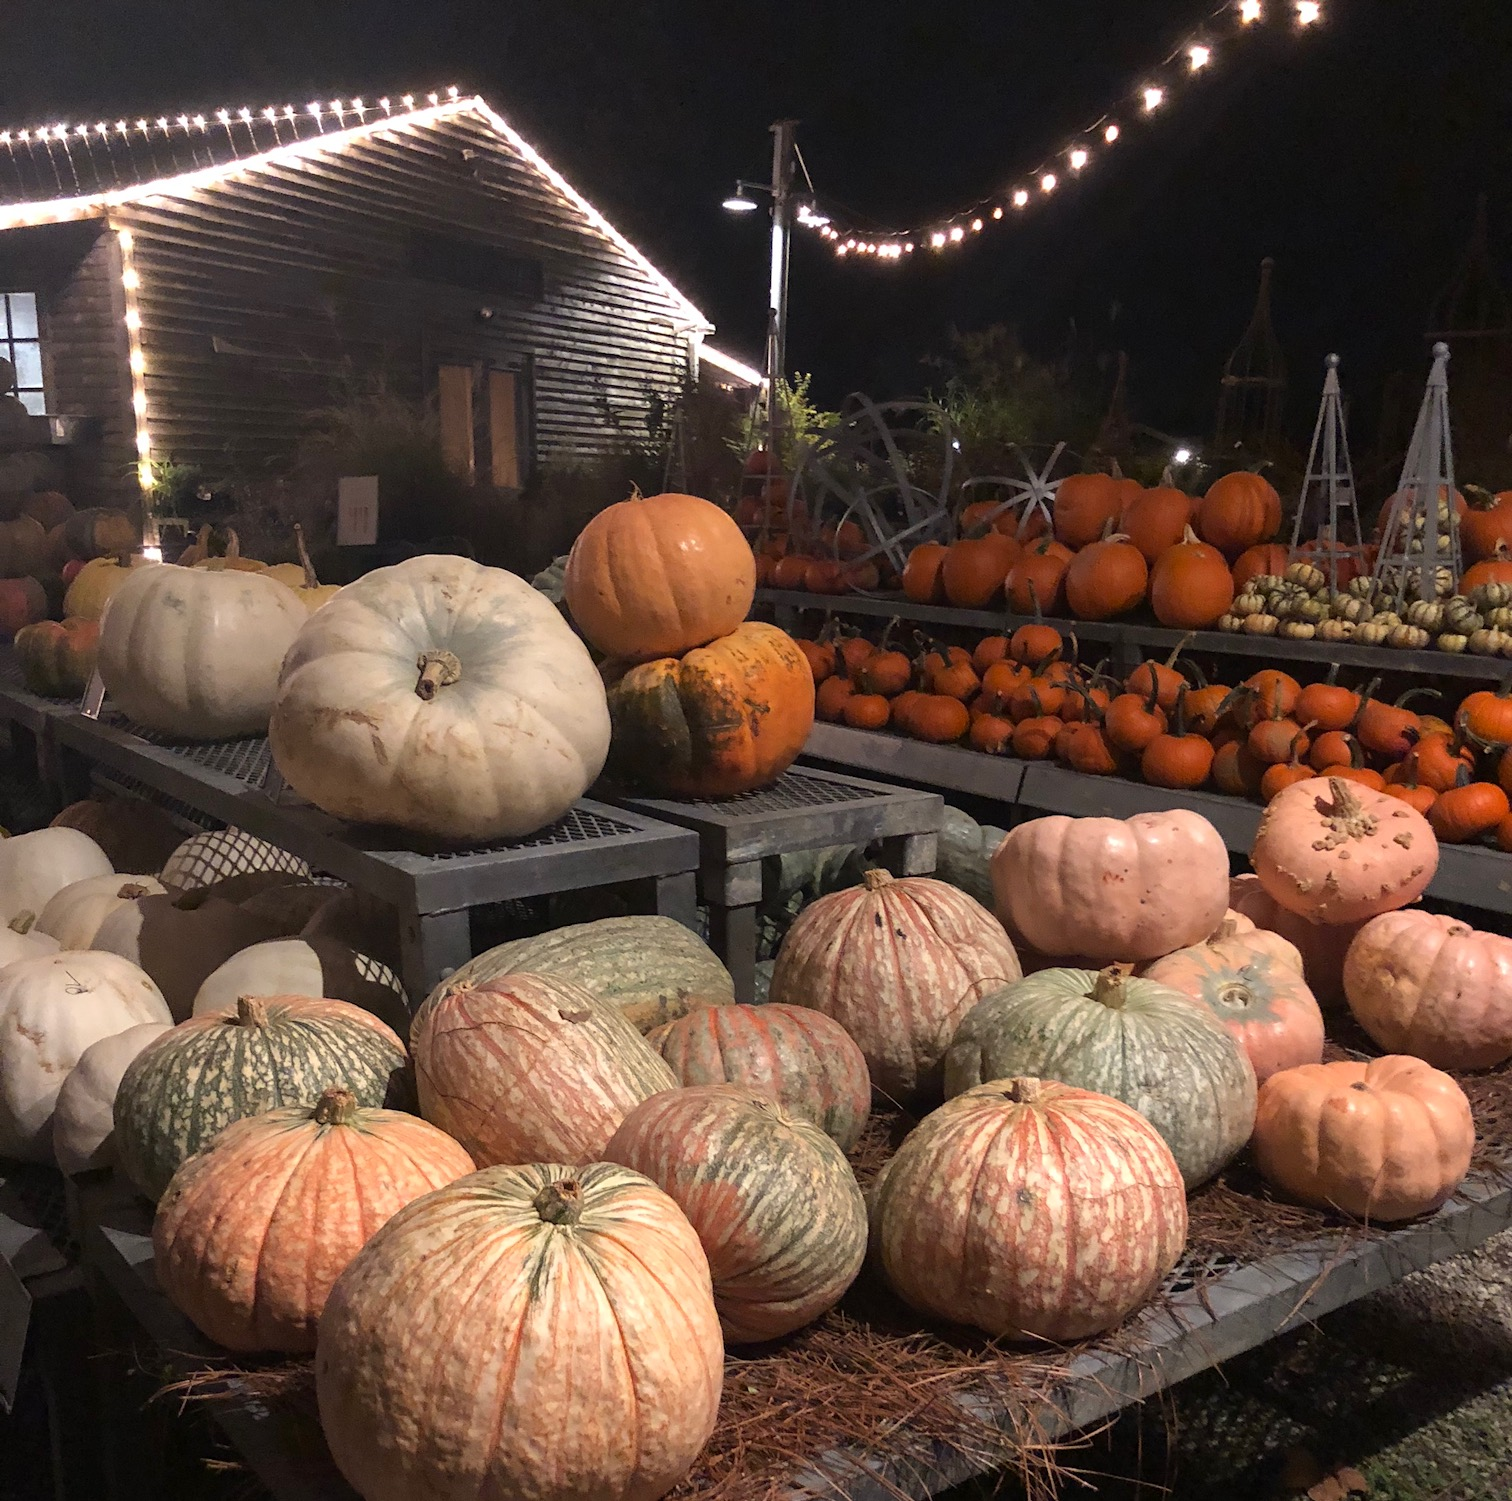 Pumpkins from Terrain at Glen Mills at the launch party for Terrain's new book - More at Thinking Outside the Boxwood